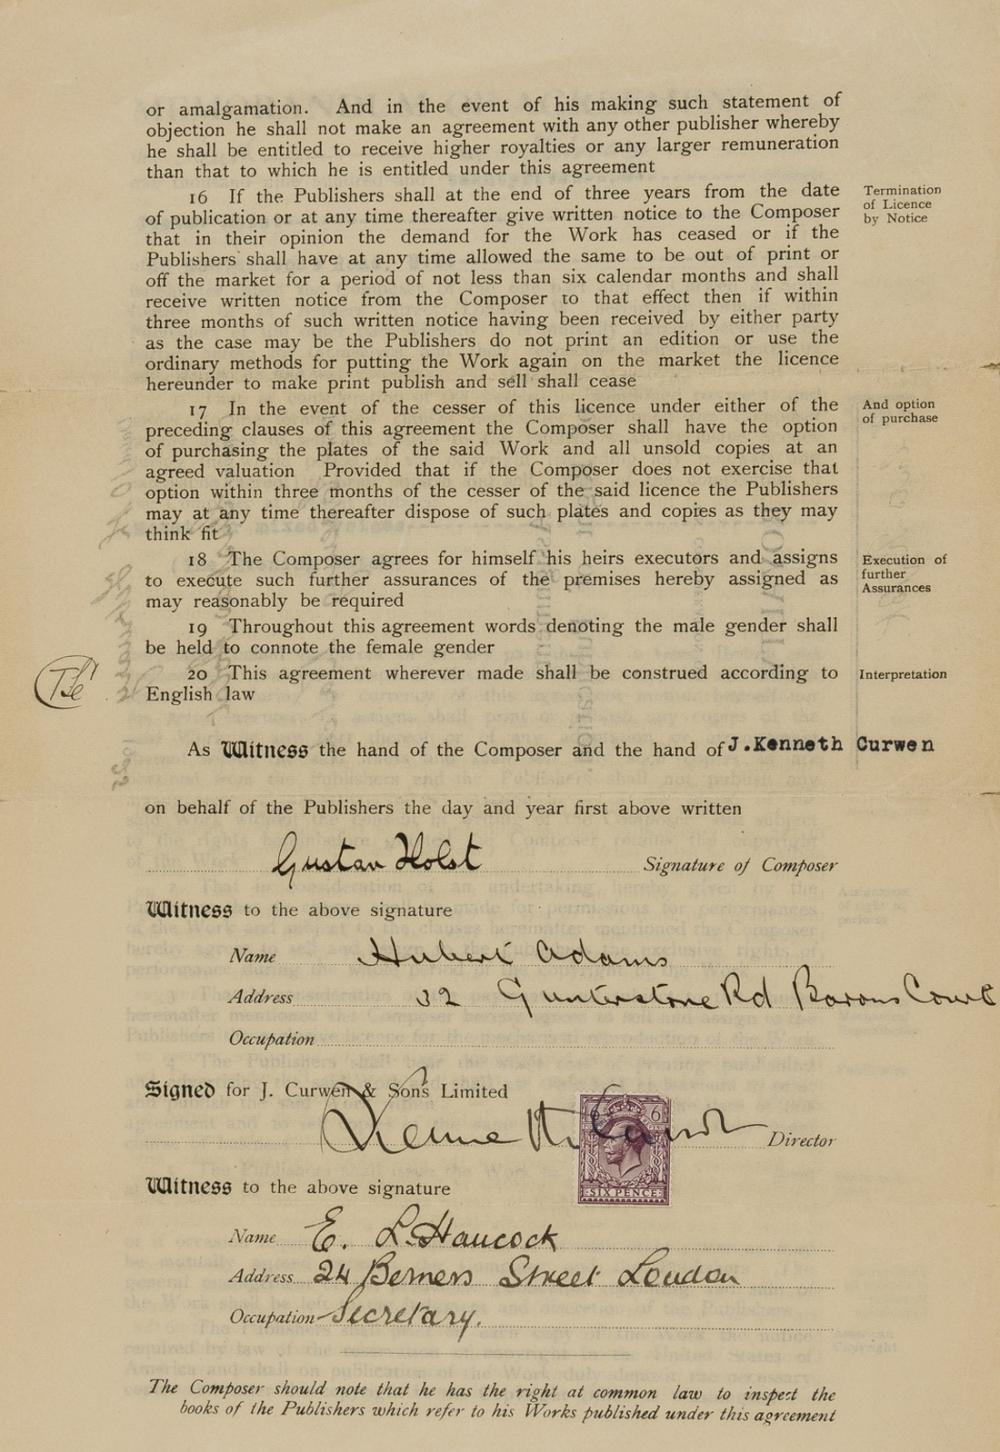 """Holst (Gustav Theodore) Assignment of copyright for his partsong """"Evening Watch""""... Right of Publication, printed with manuscript insertions, 1925; and 7 other pieces of documents relating to Holst's …"""